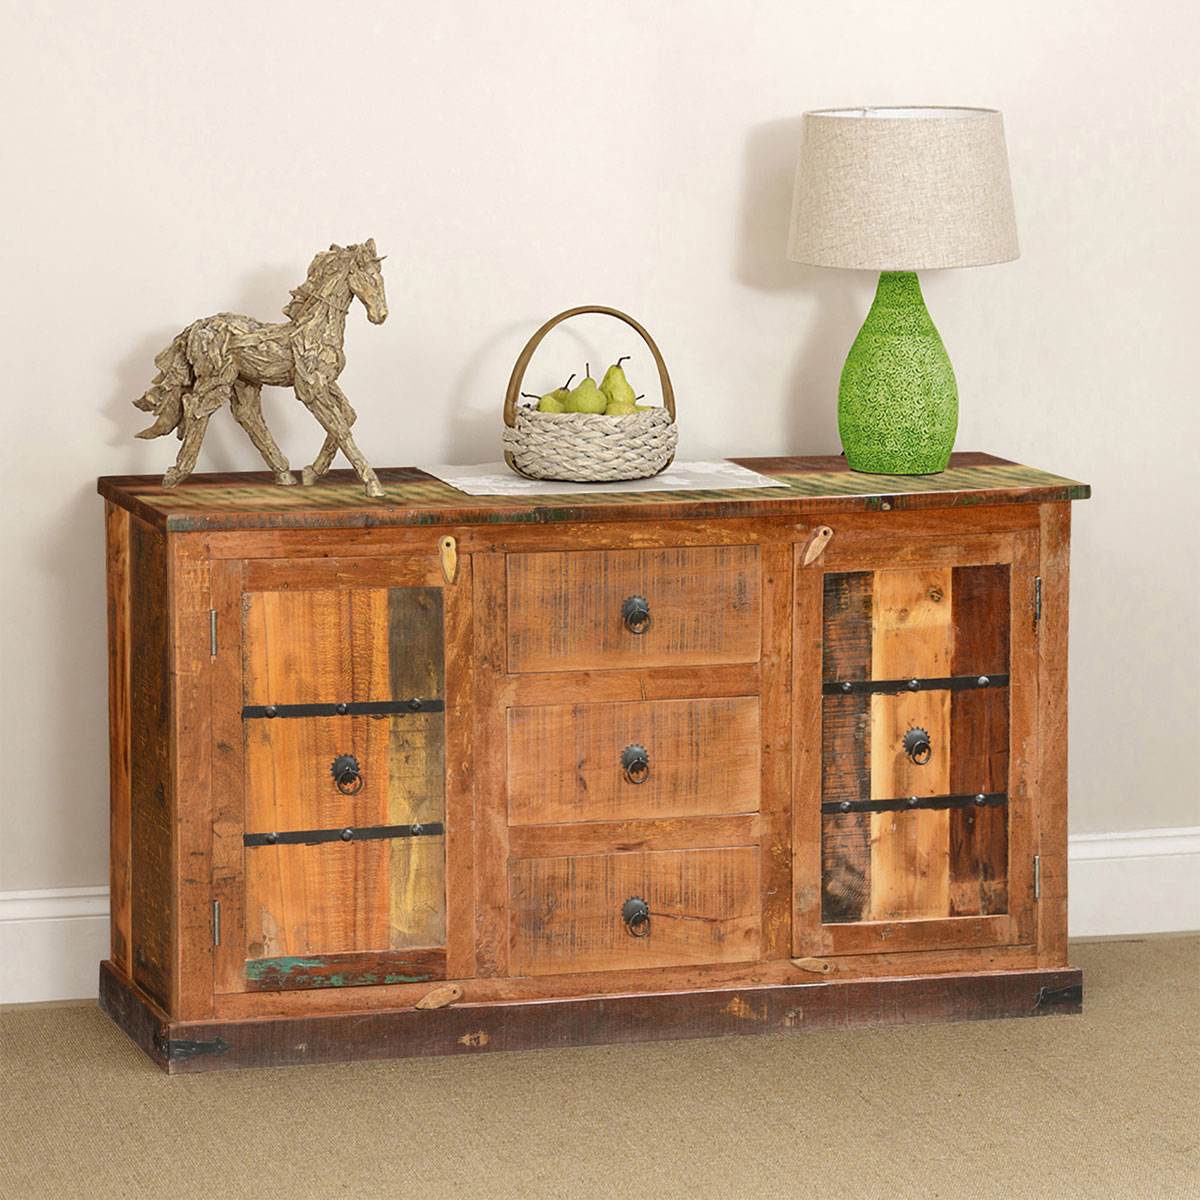 Starburst 3 Door Sideboards With Well Known Classic Country Rustic Reclaimed Wood 3 Drawer Sideboard Cabinet (View 15 of 20)